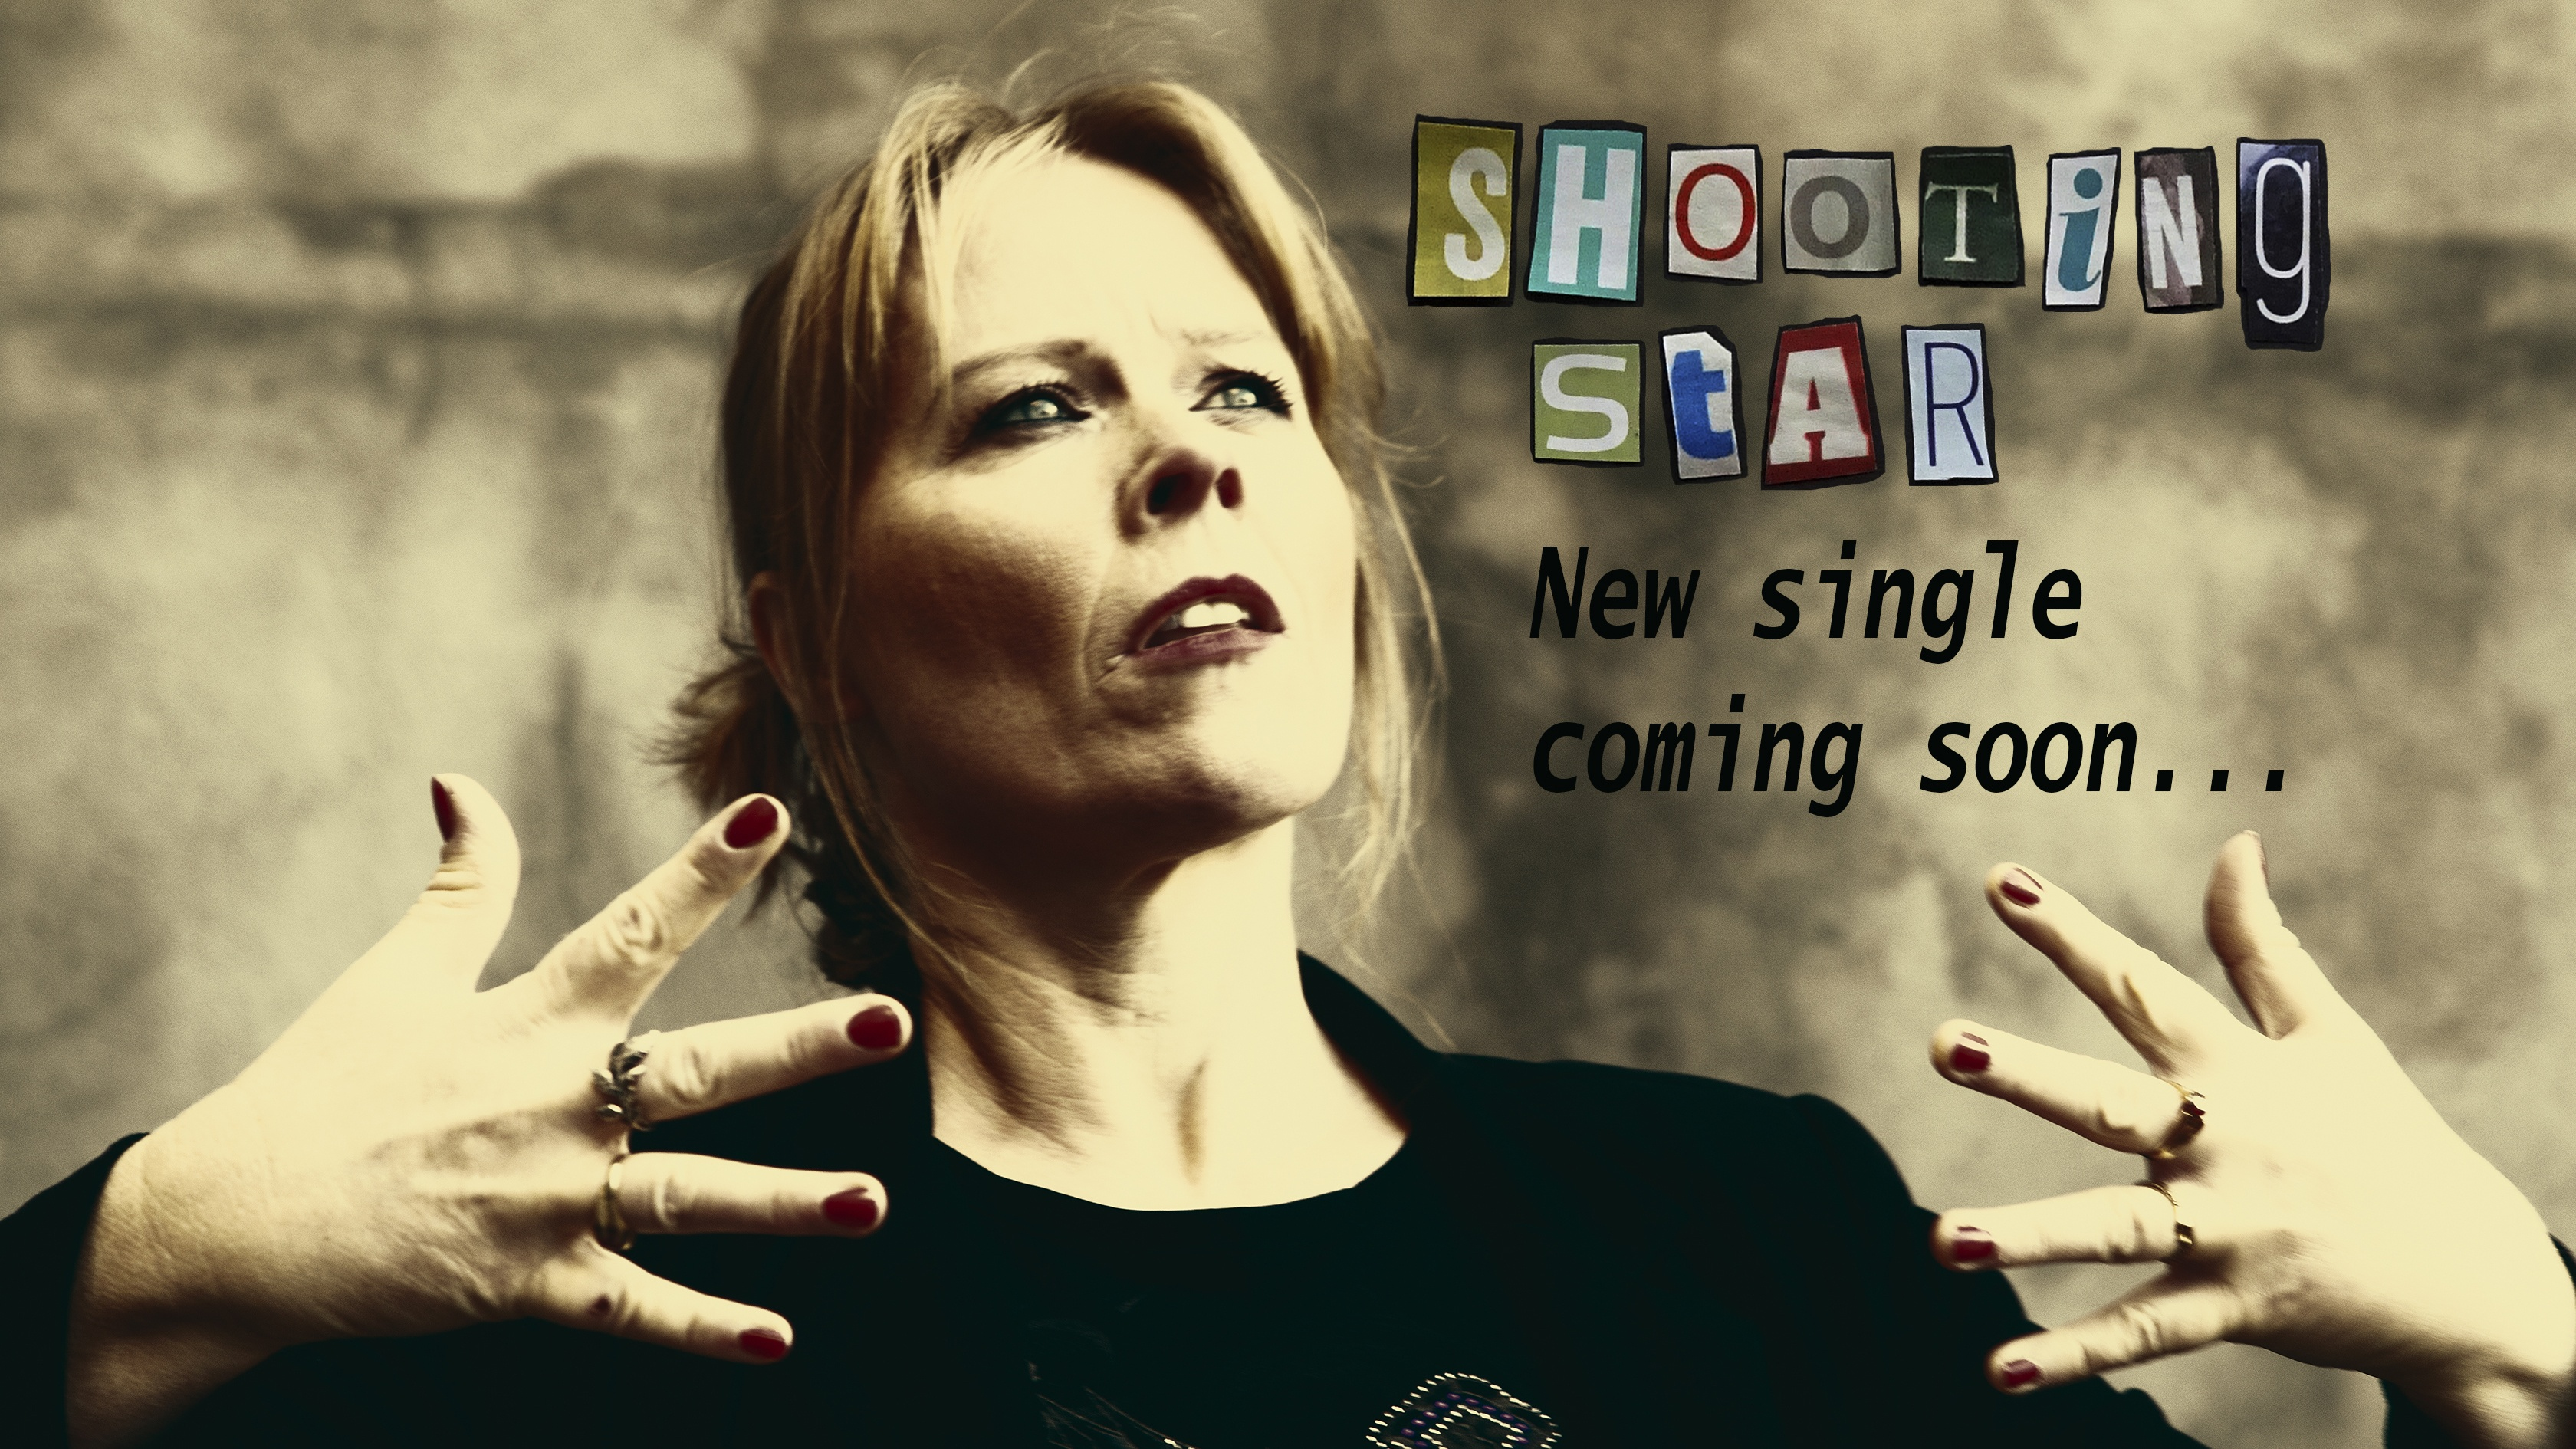 June Beltoft - singer and songwriter - Shooting Star, new single coming up